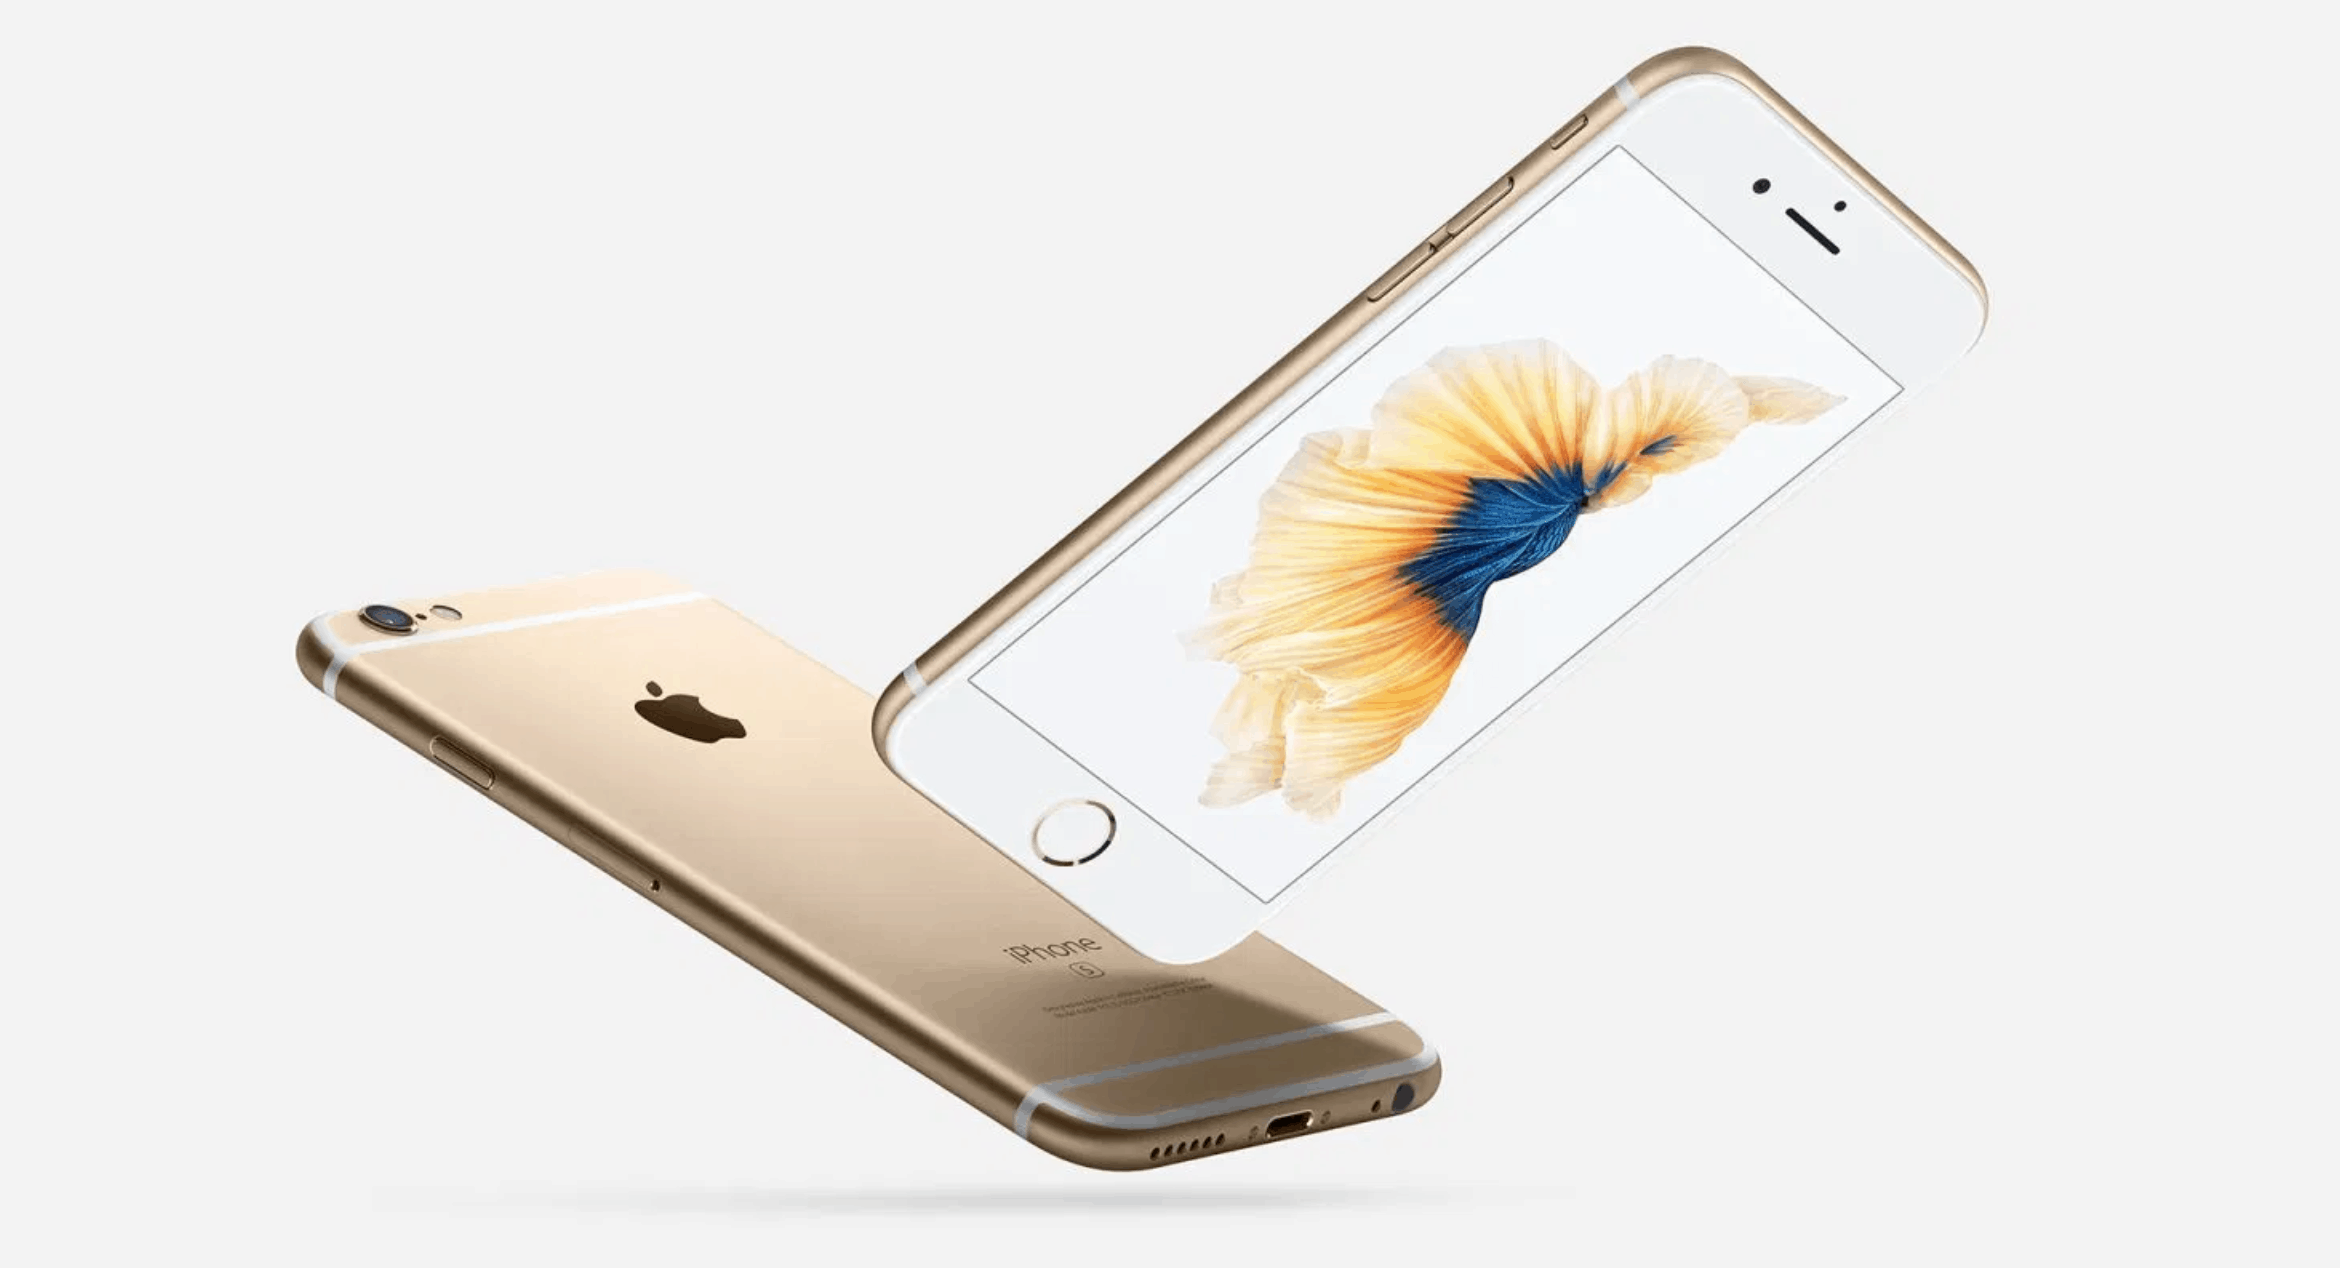 Apple Opens a Repair Program for the iPhone 6s Plus and 6s